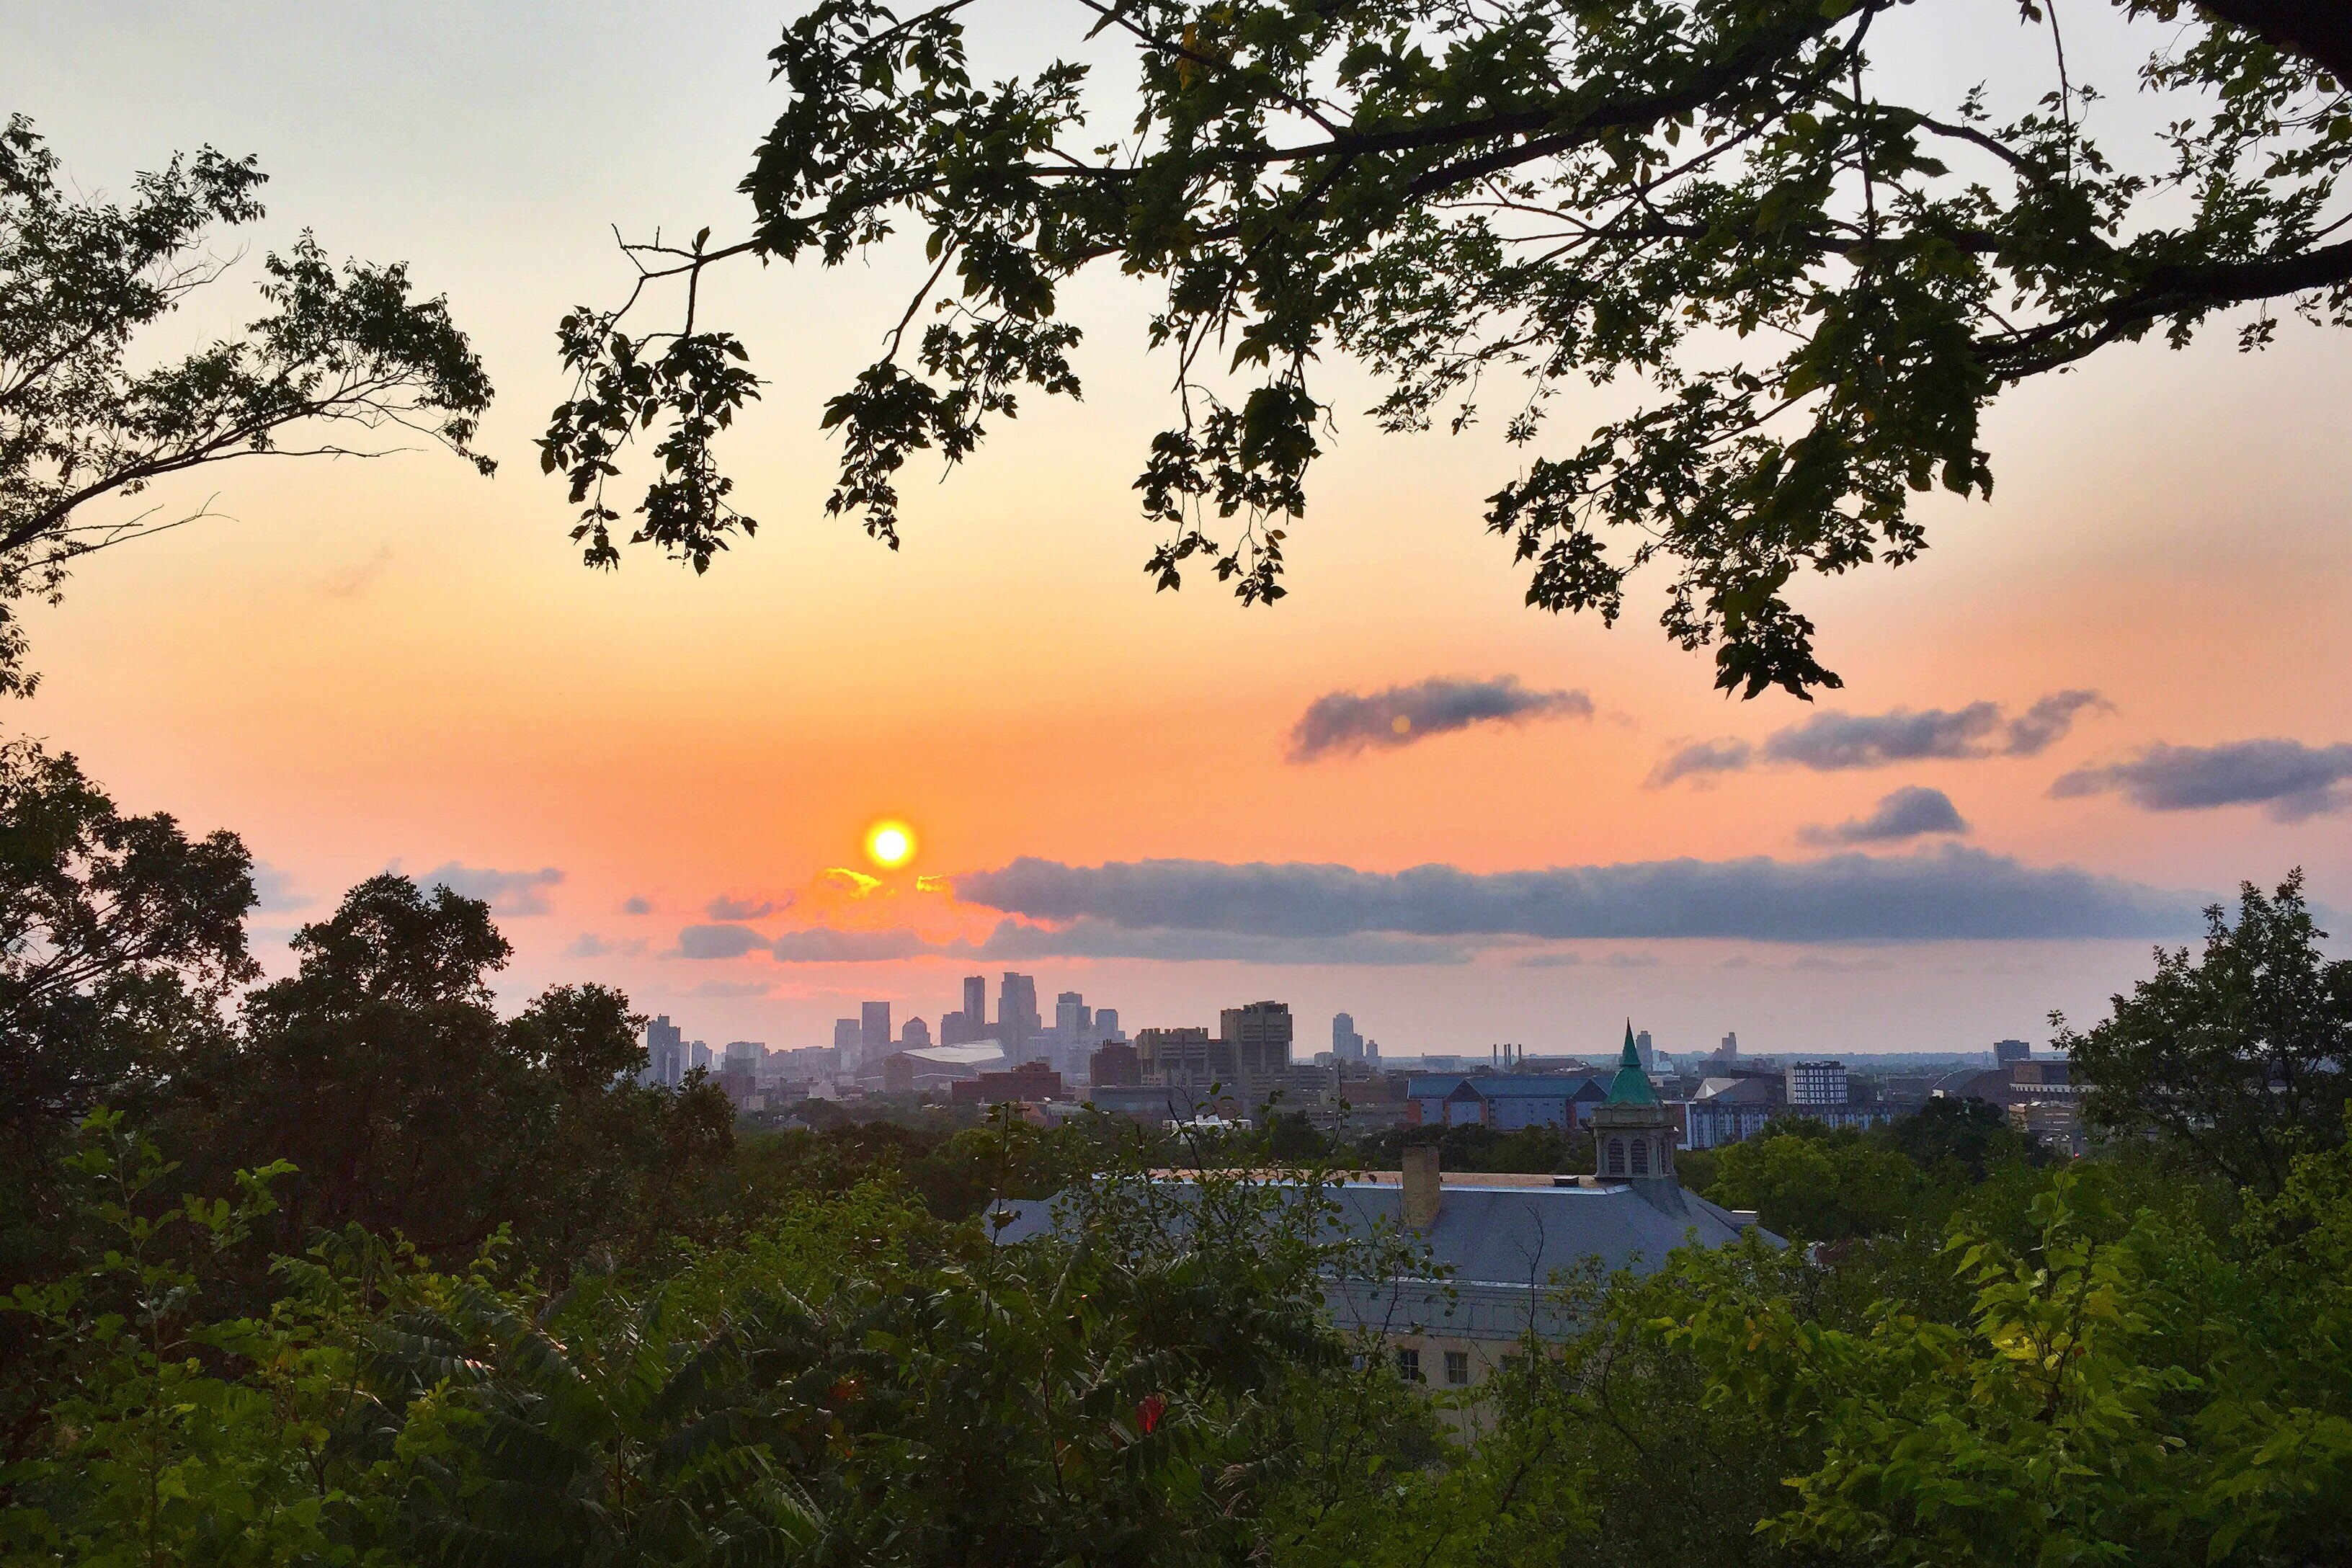 View from Prospect Park